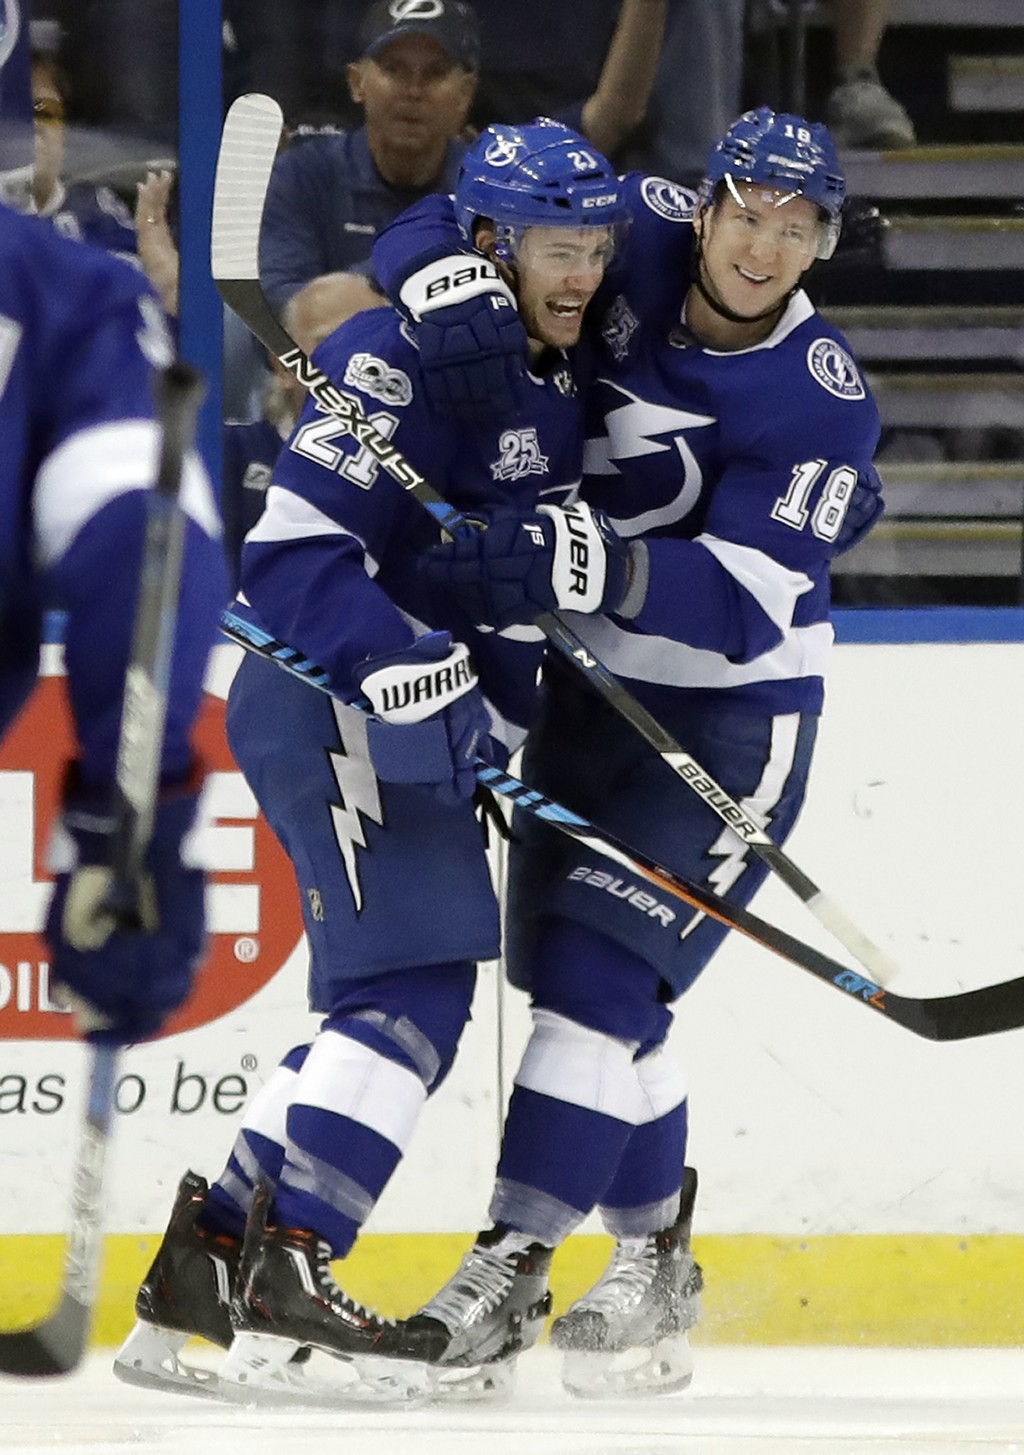 Tampa Bay Lightning center Brayden Point (21) celebrates his goal against the New York Islanders with left wing Ondrej Palat (18) during the first per